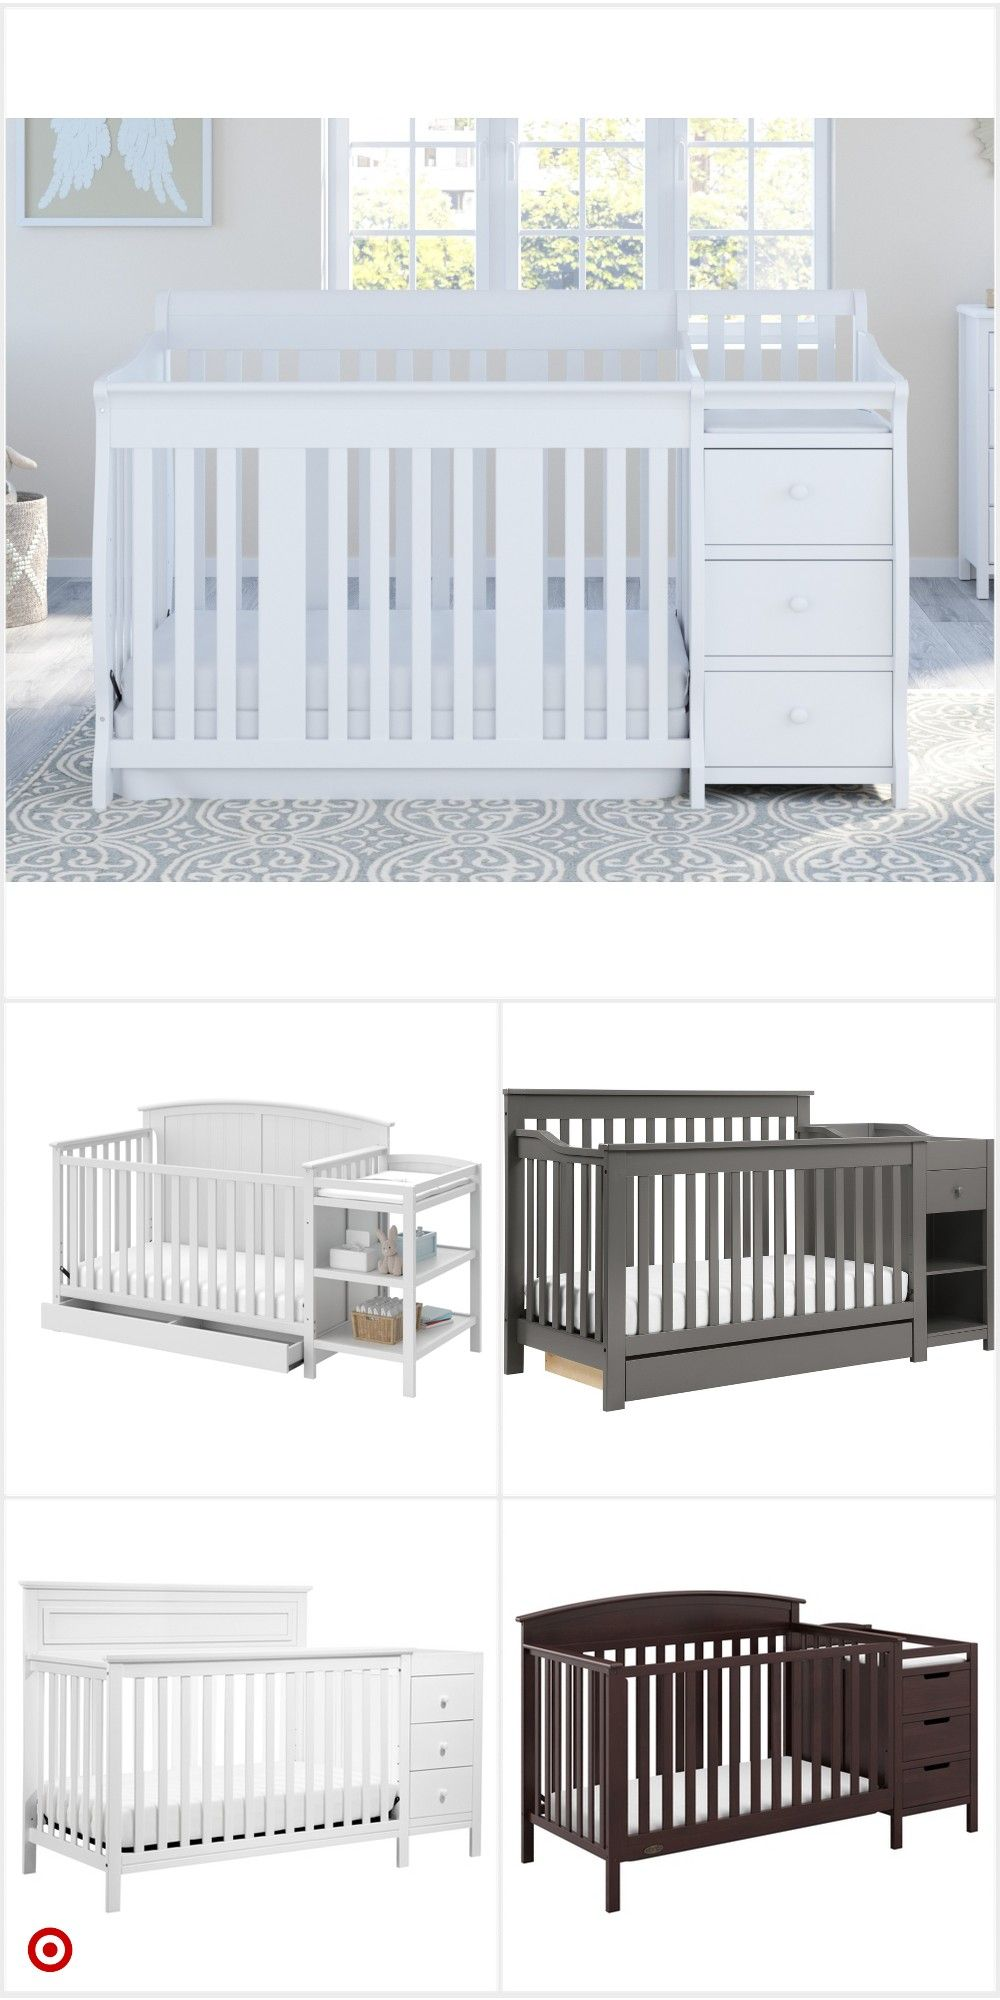 Shop Target For Crib Changer Combo You Will Love At Great Low